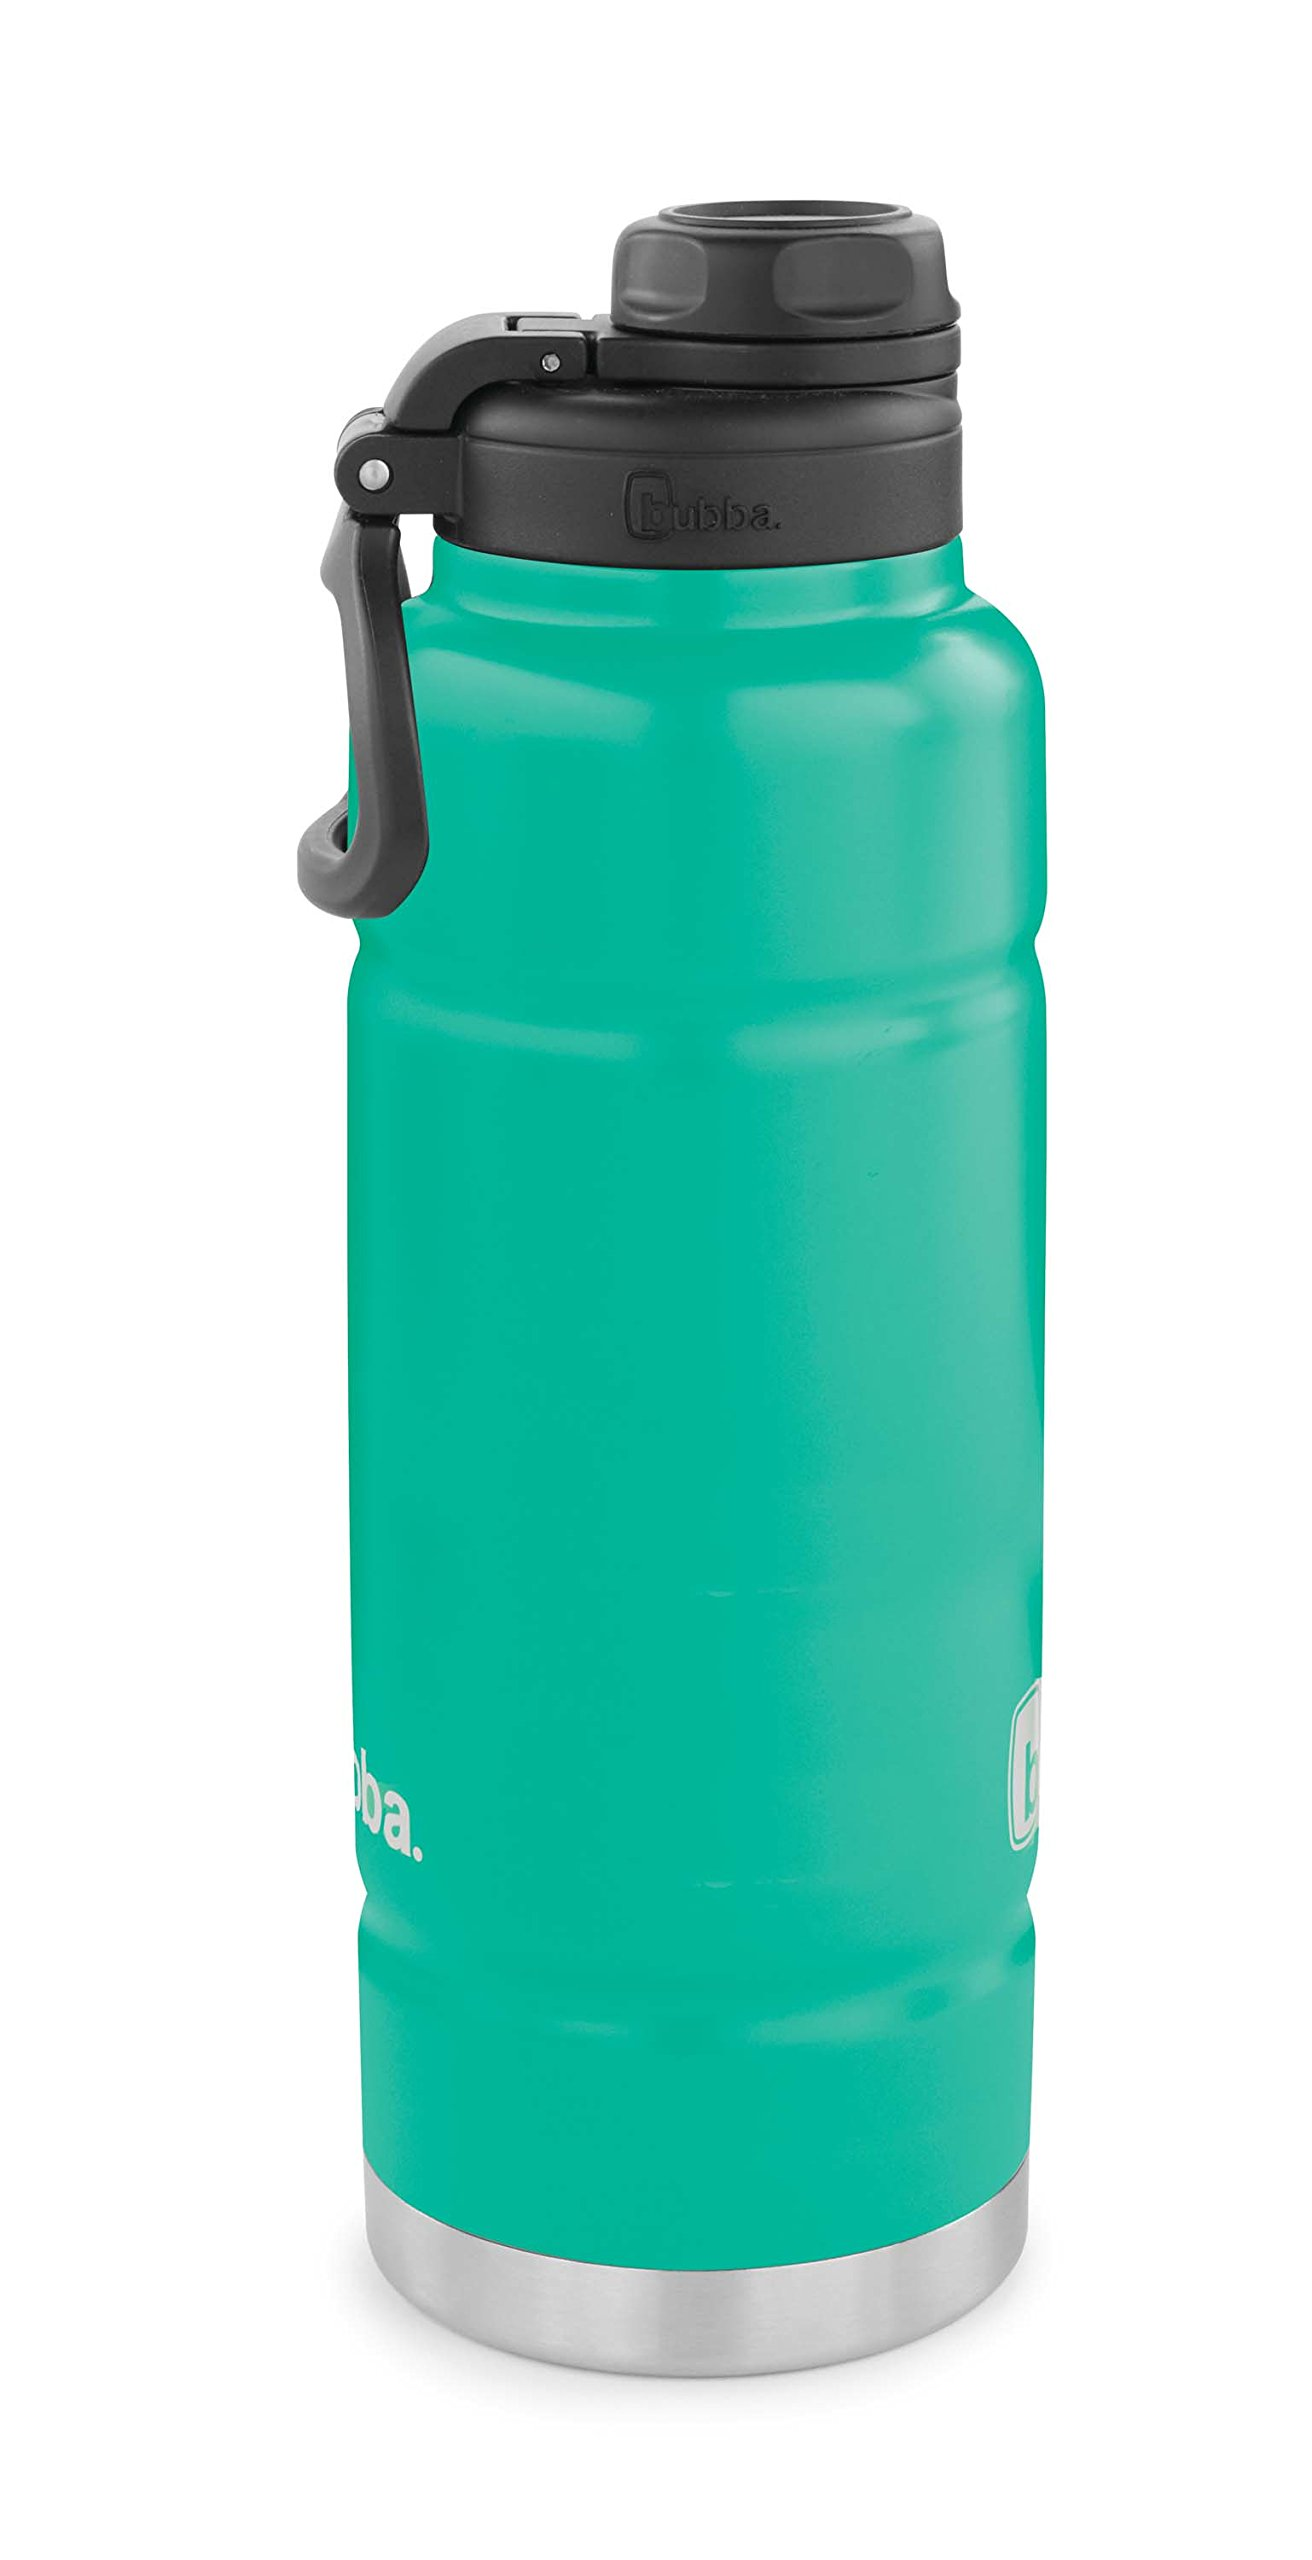 Bubba Trailblazer Vacuum-Insulated Stainless Steel Water Bottle, 40 oz, Rock Candy by bubba (Image #2)